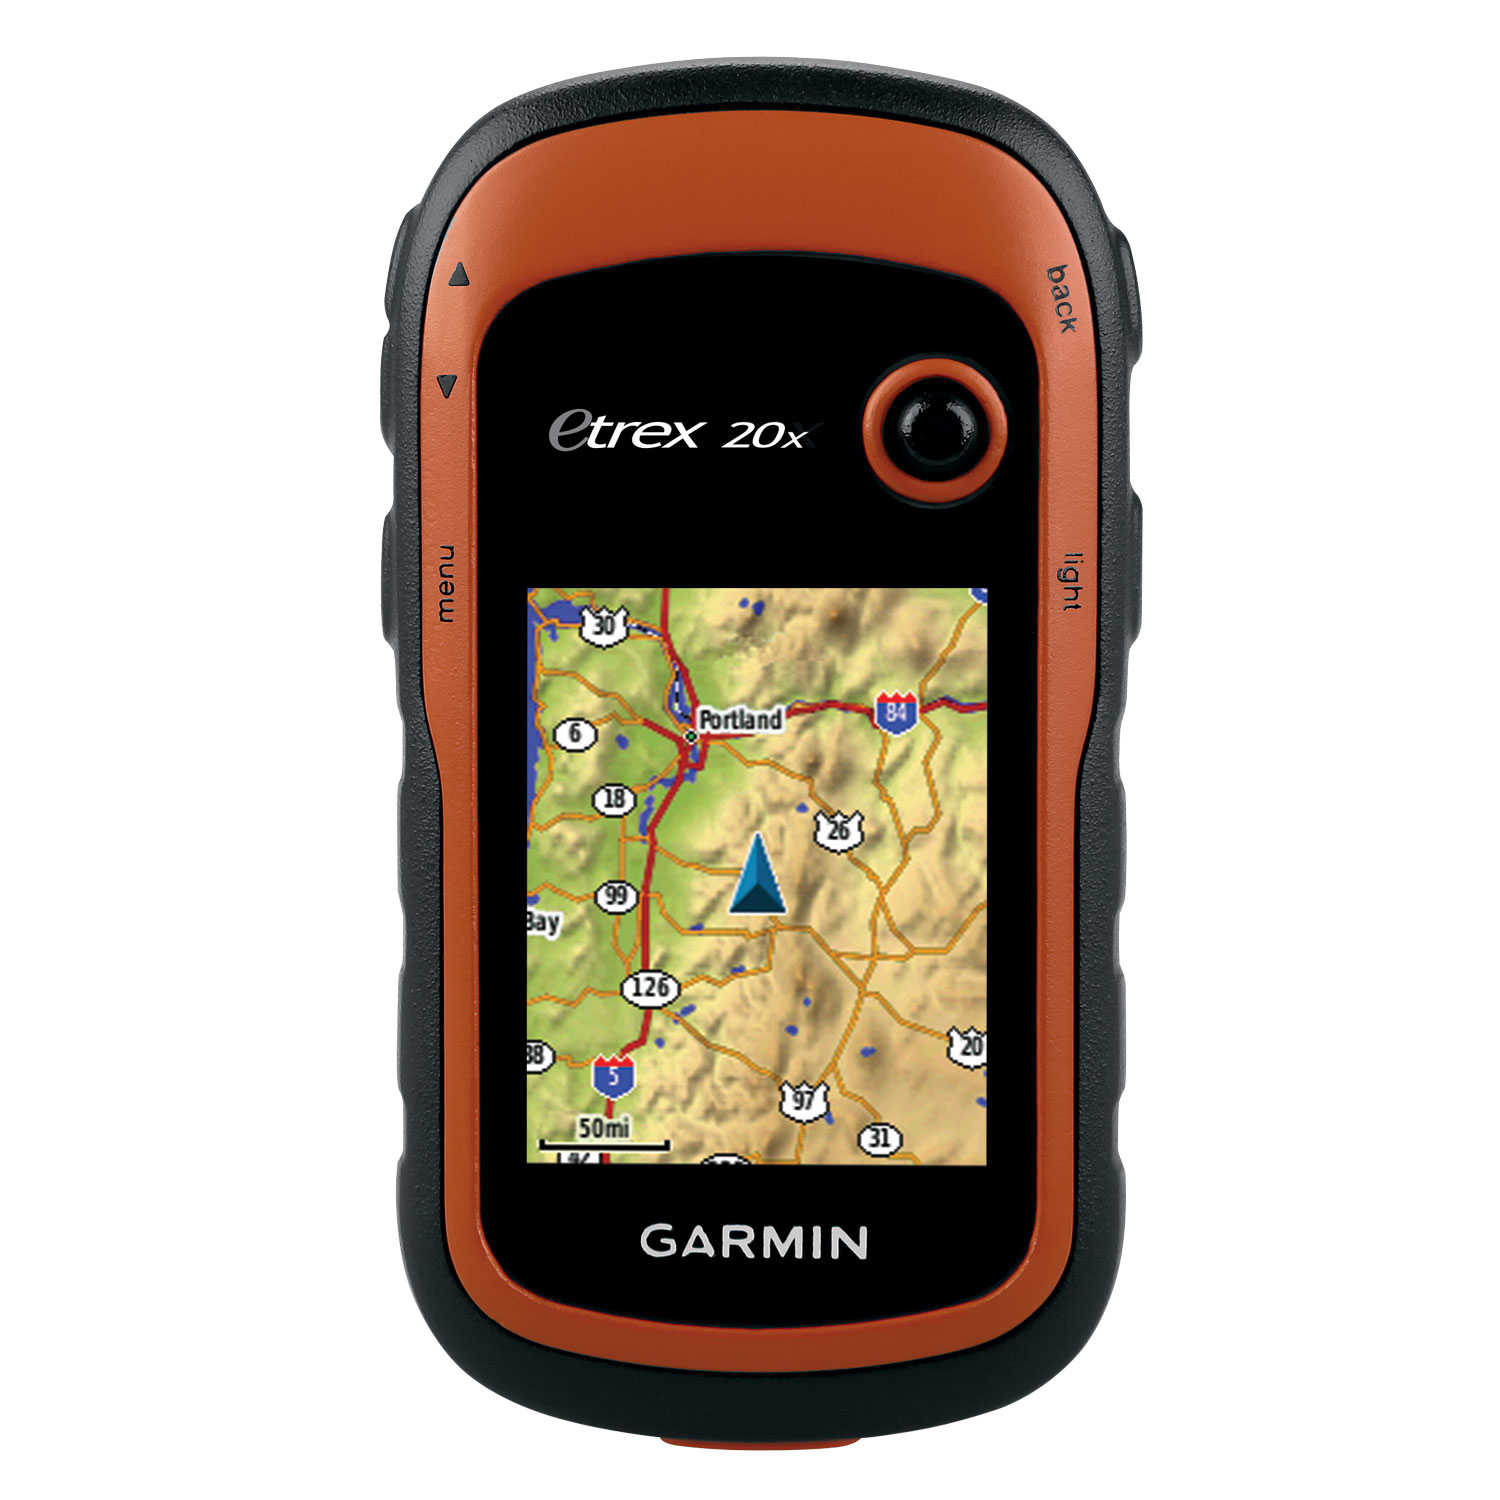 Garmin® eTrex® 20x GPS Receiver on garmin astro 320 topo maps, garmin rino 120 topo maps, garmin etrex 20 topo maps, garmin dakota 20 topo maps, garmin etrex legend hcx topo maps,